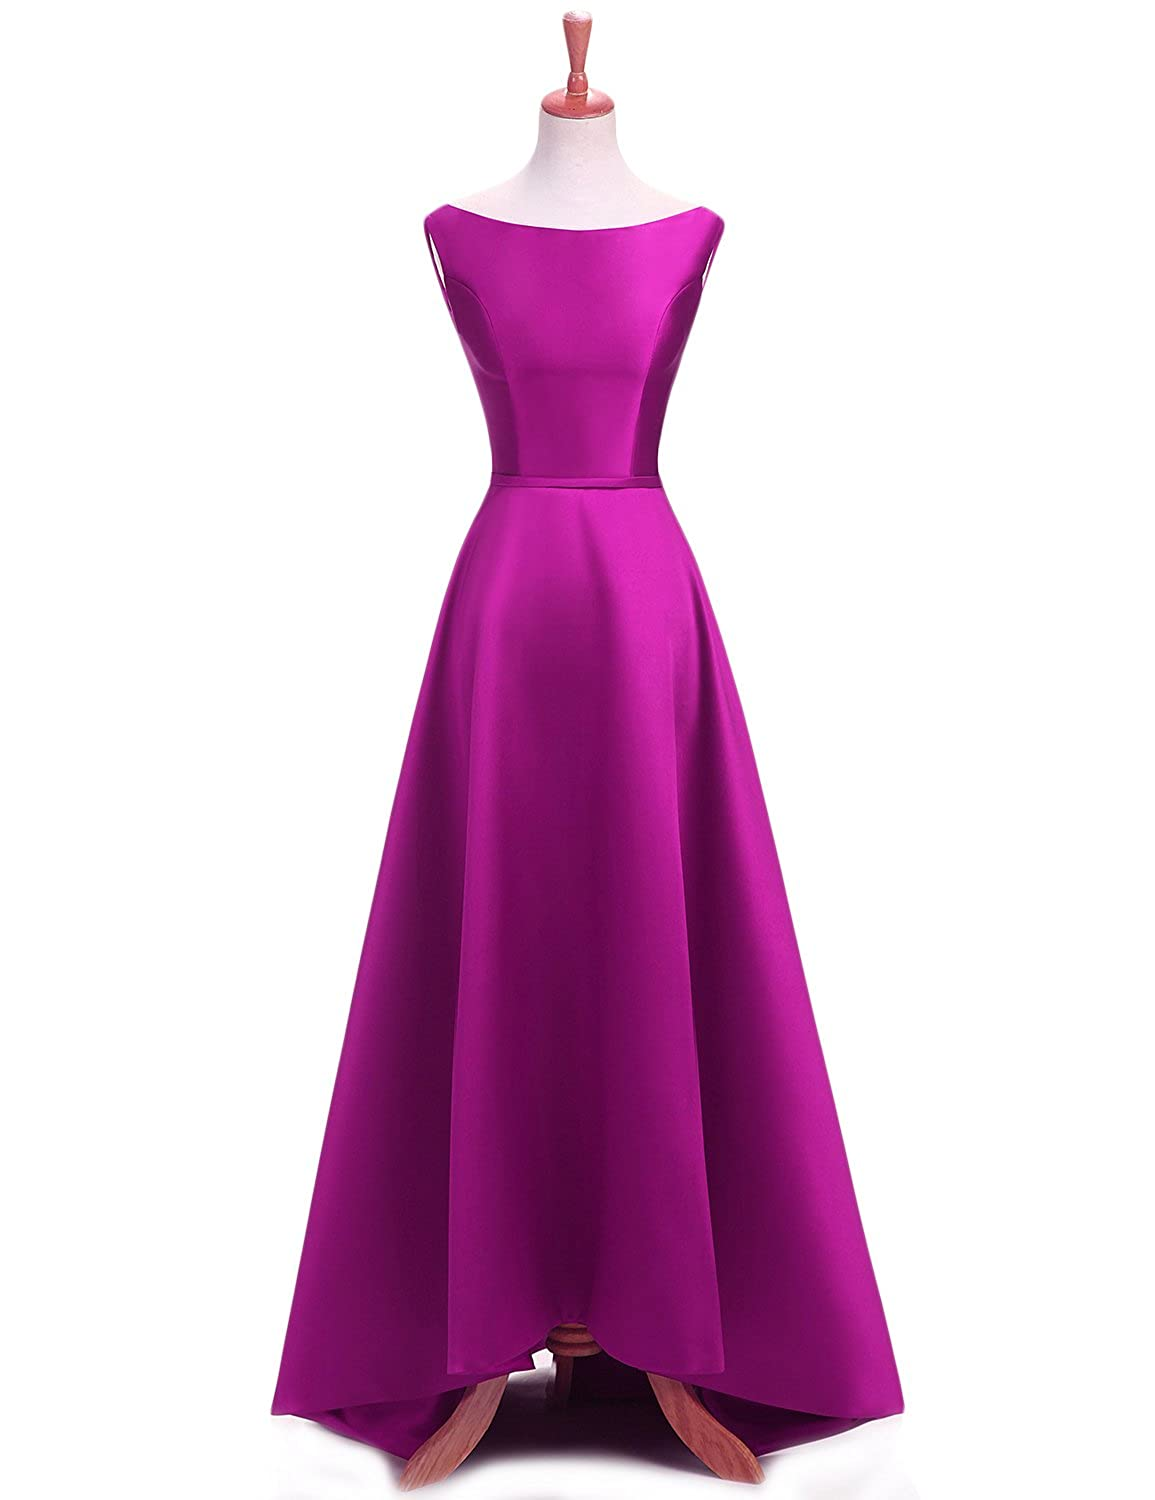 Fuchsia YSMei Women's Long Aline Prom Dress Sleeveless Satin Ball Gown with Corset Back ON055